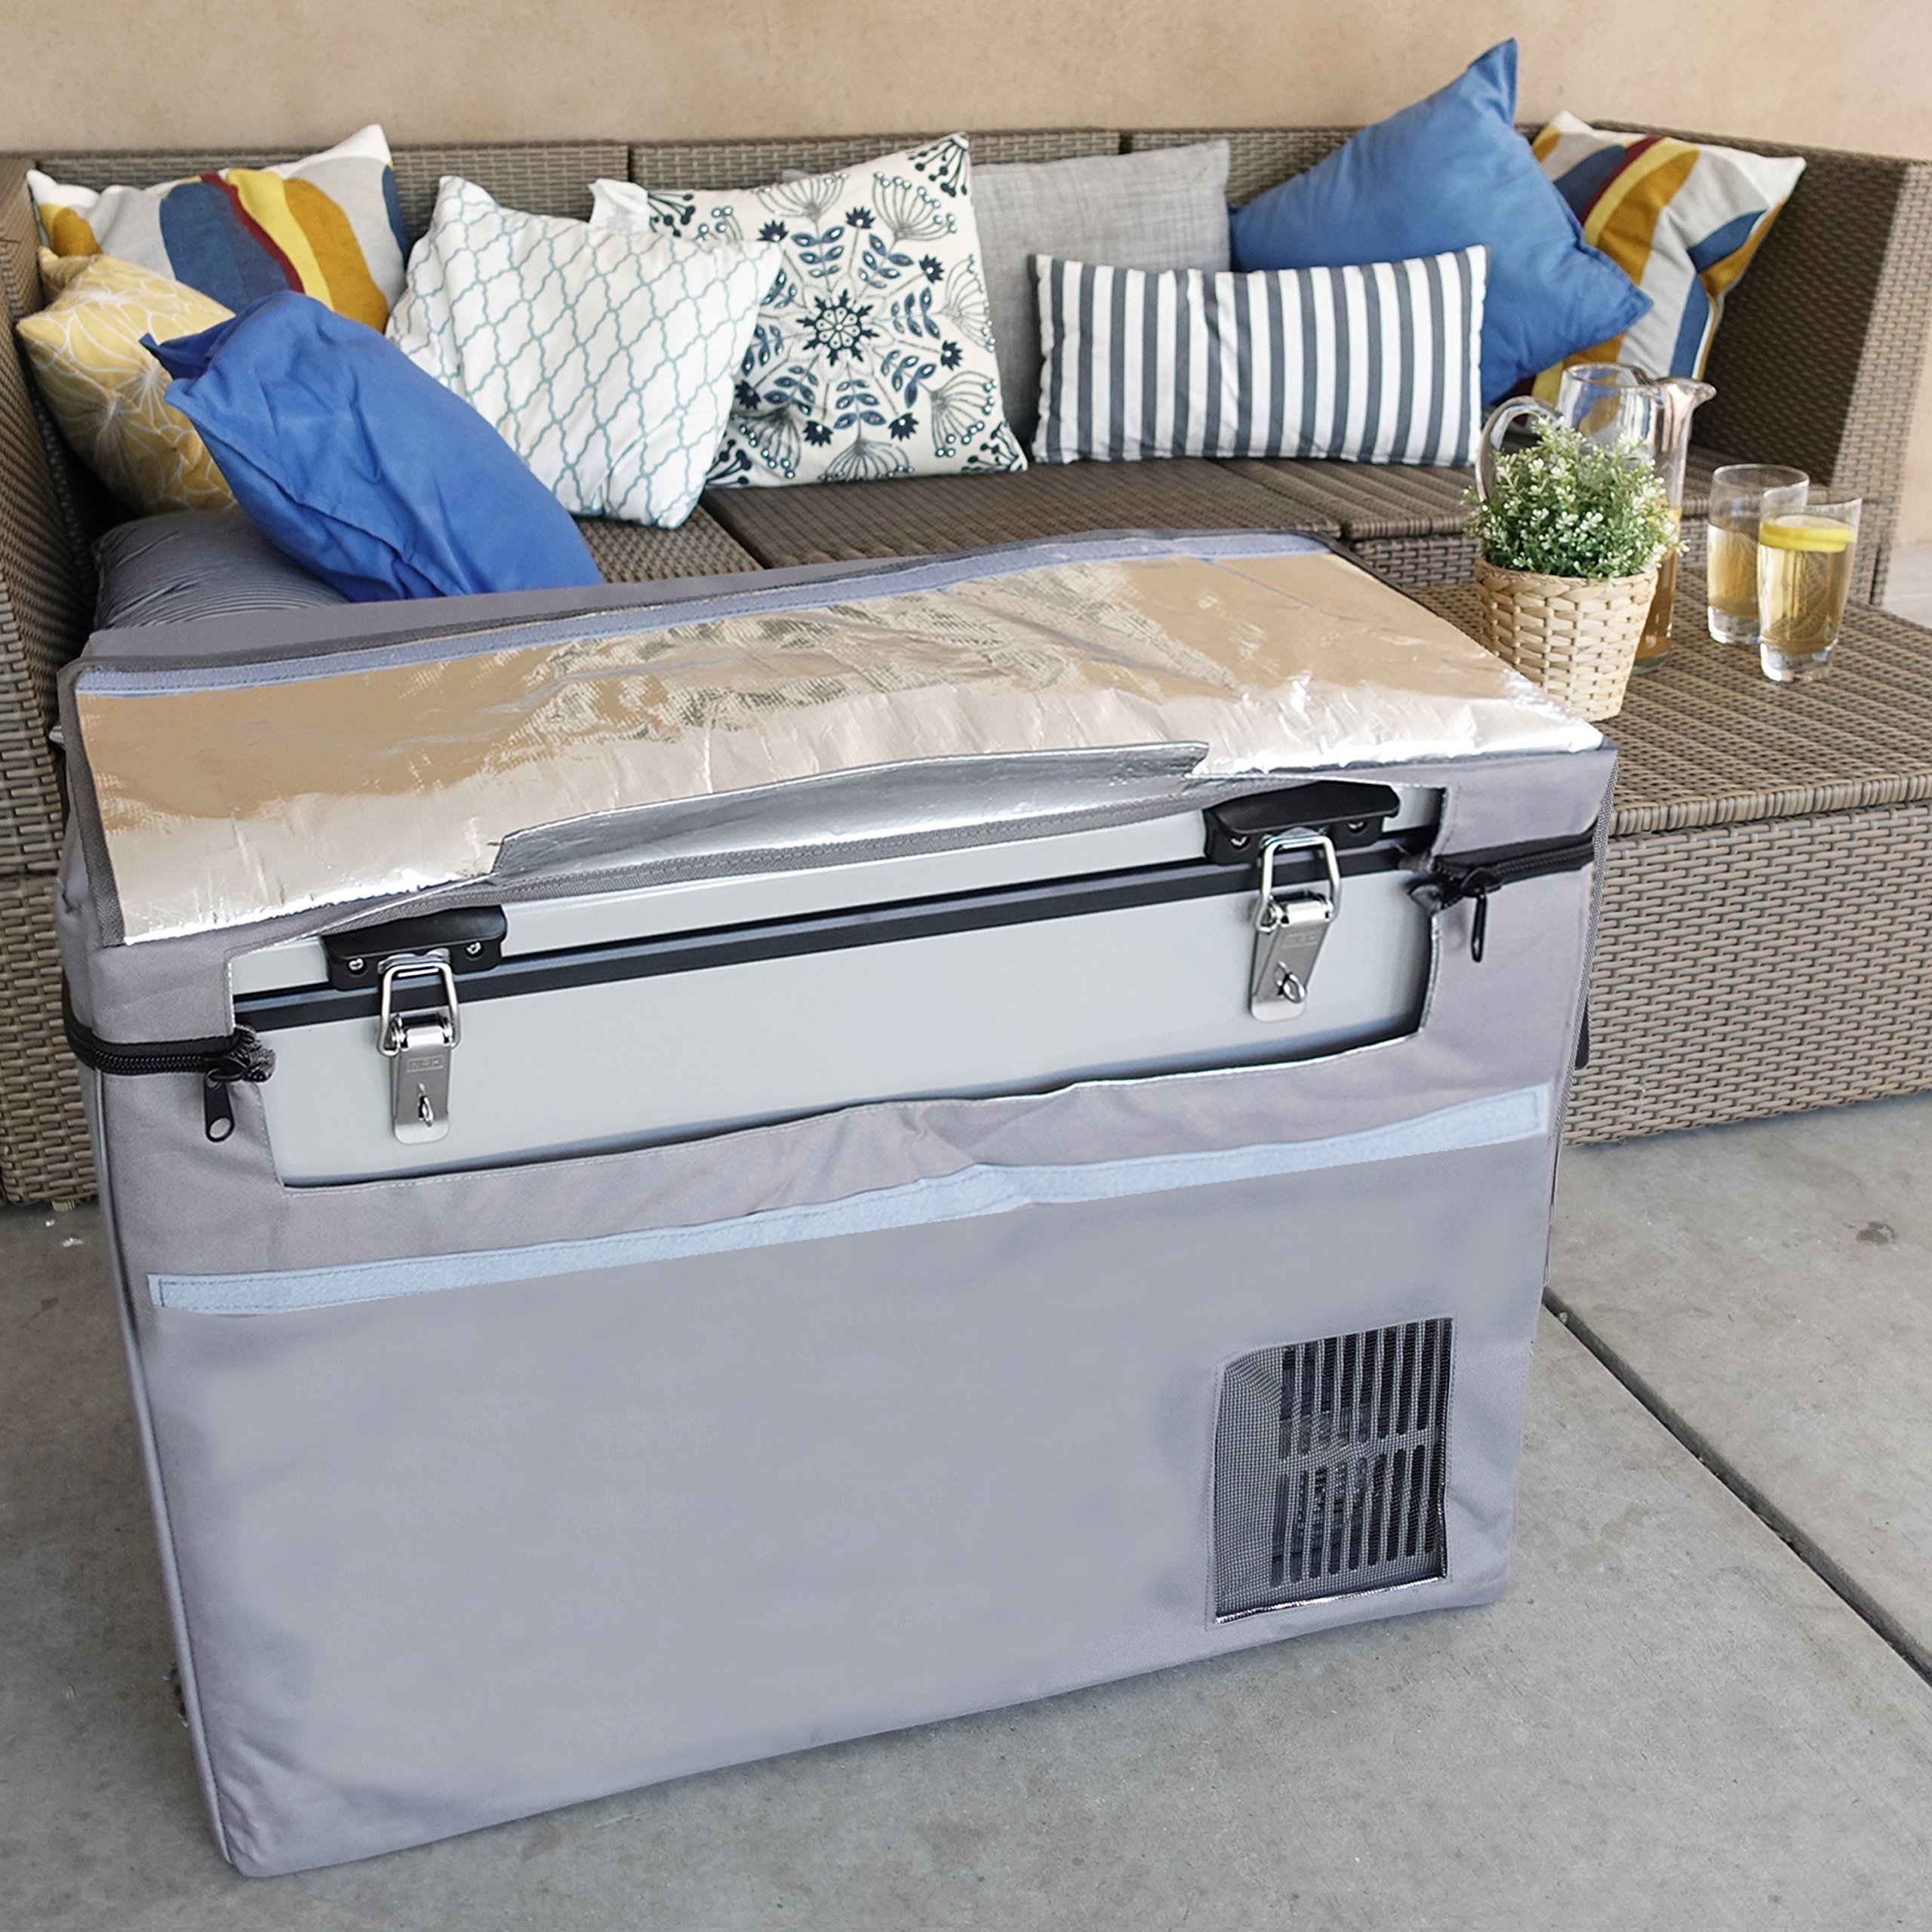 Whynter Insulated Transit Bag for Portable Refrigerator/Freezer Model FM-65G by Whynter (Image #4)